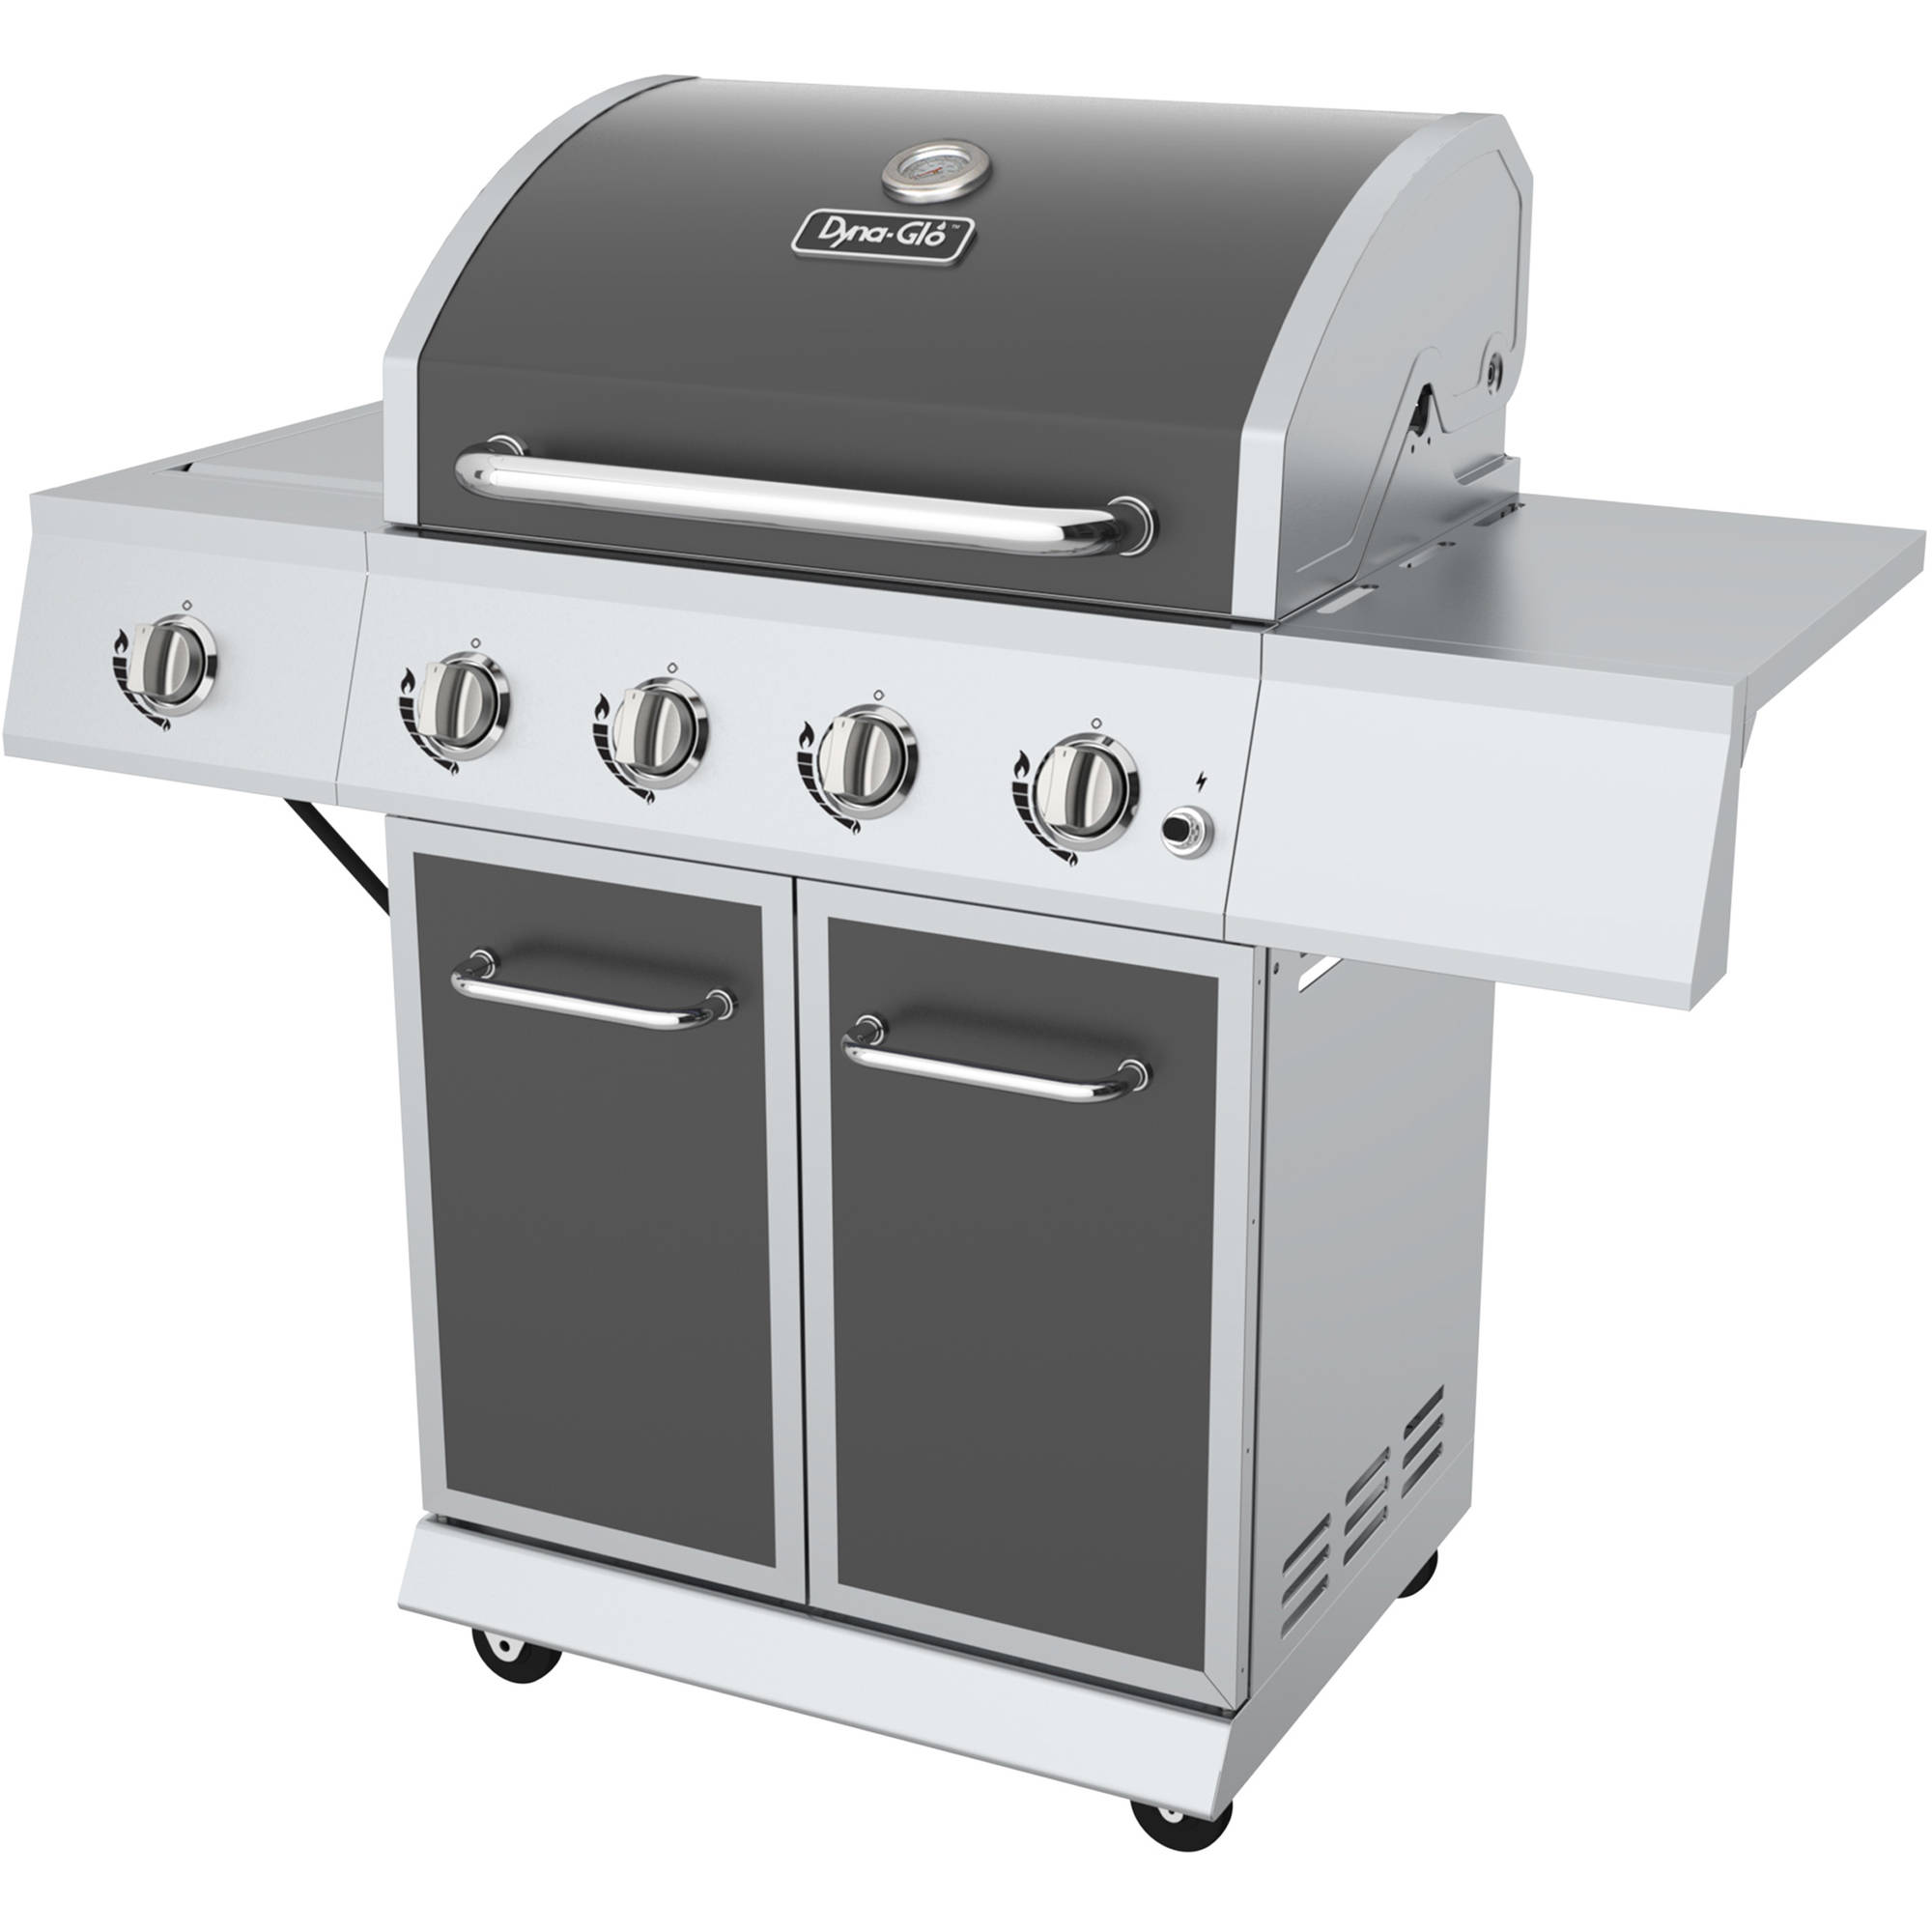 Dyna-Glo DGE486GSP-D 4-Burner Gunmetal LP Gas Grill by GHP Group, Inc.